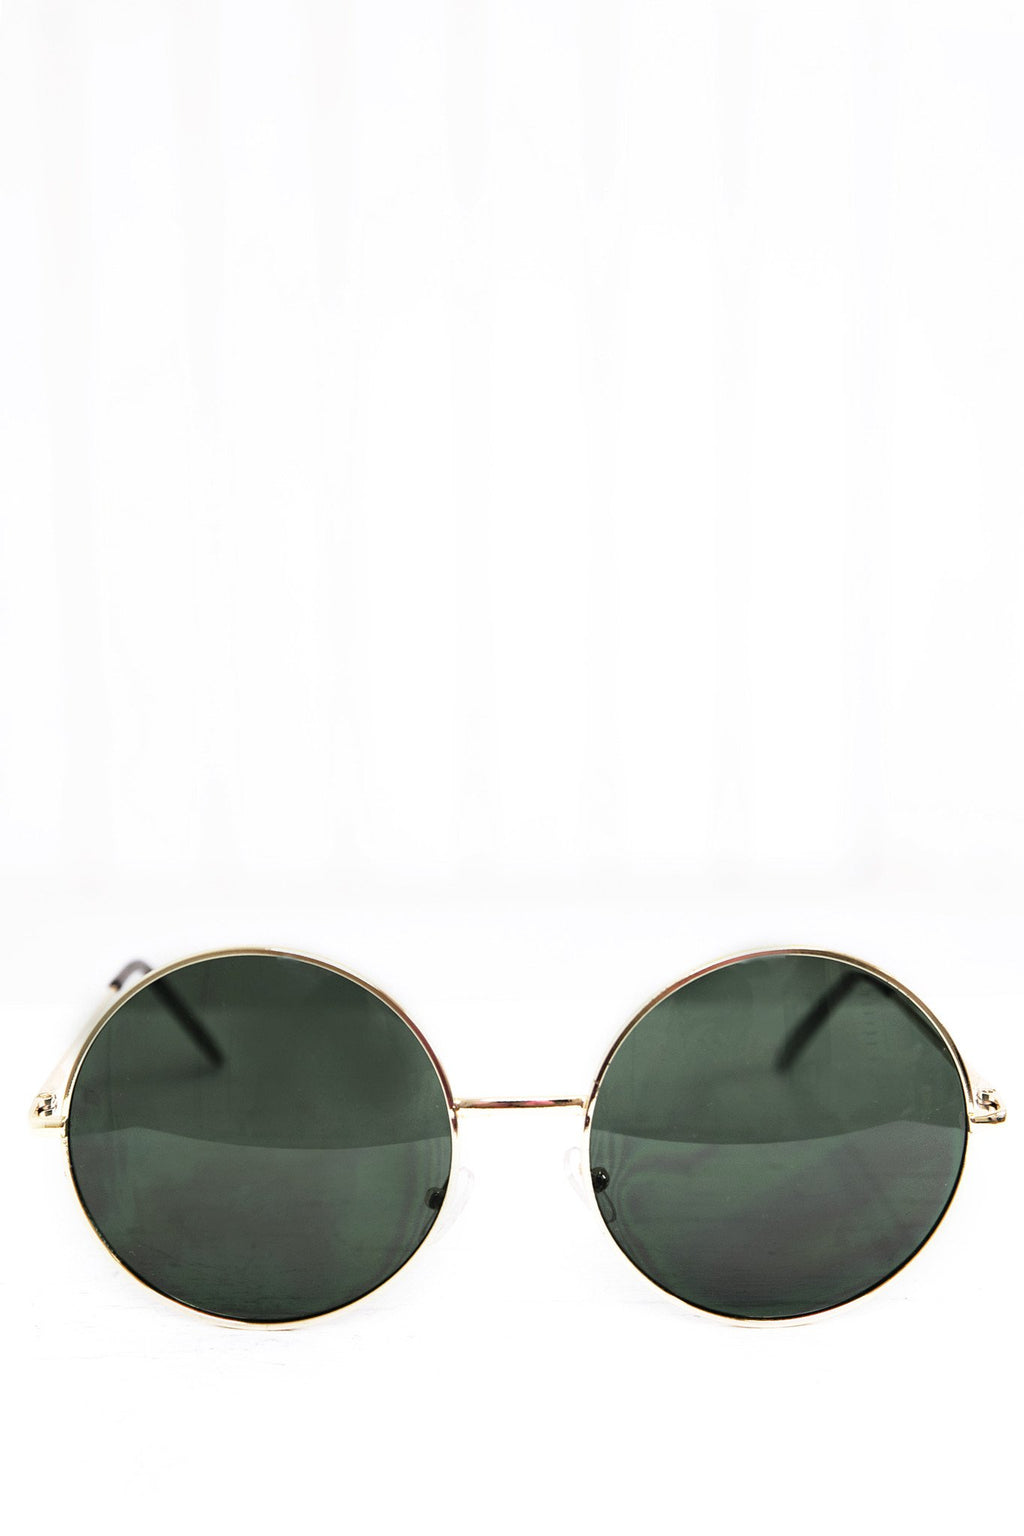 Farrah Round Sunglasses - Green/Gold - Haute & Rebellious